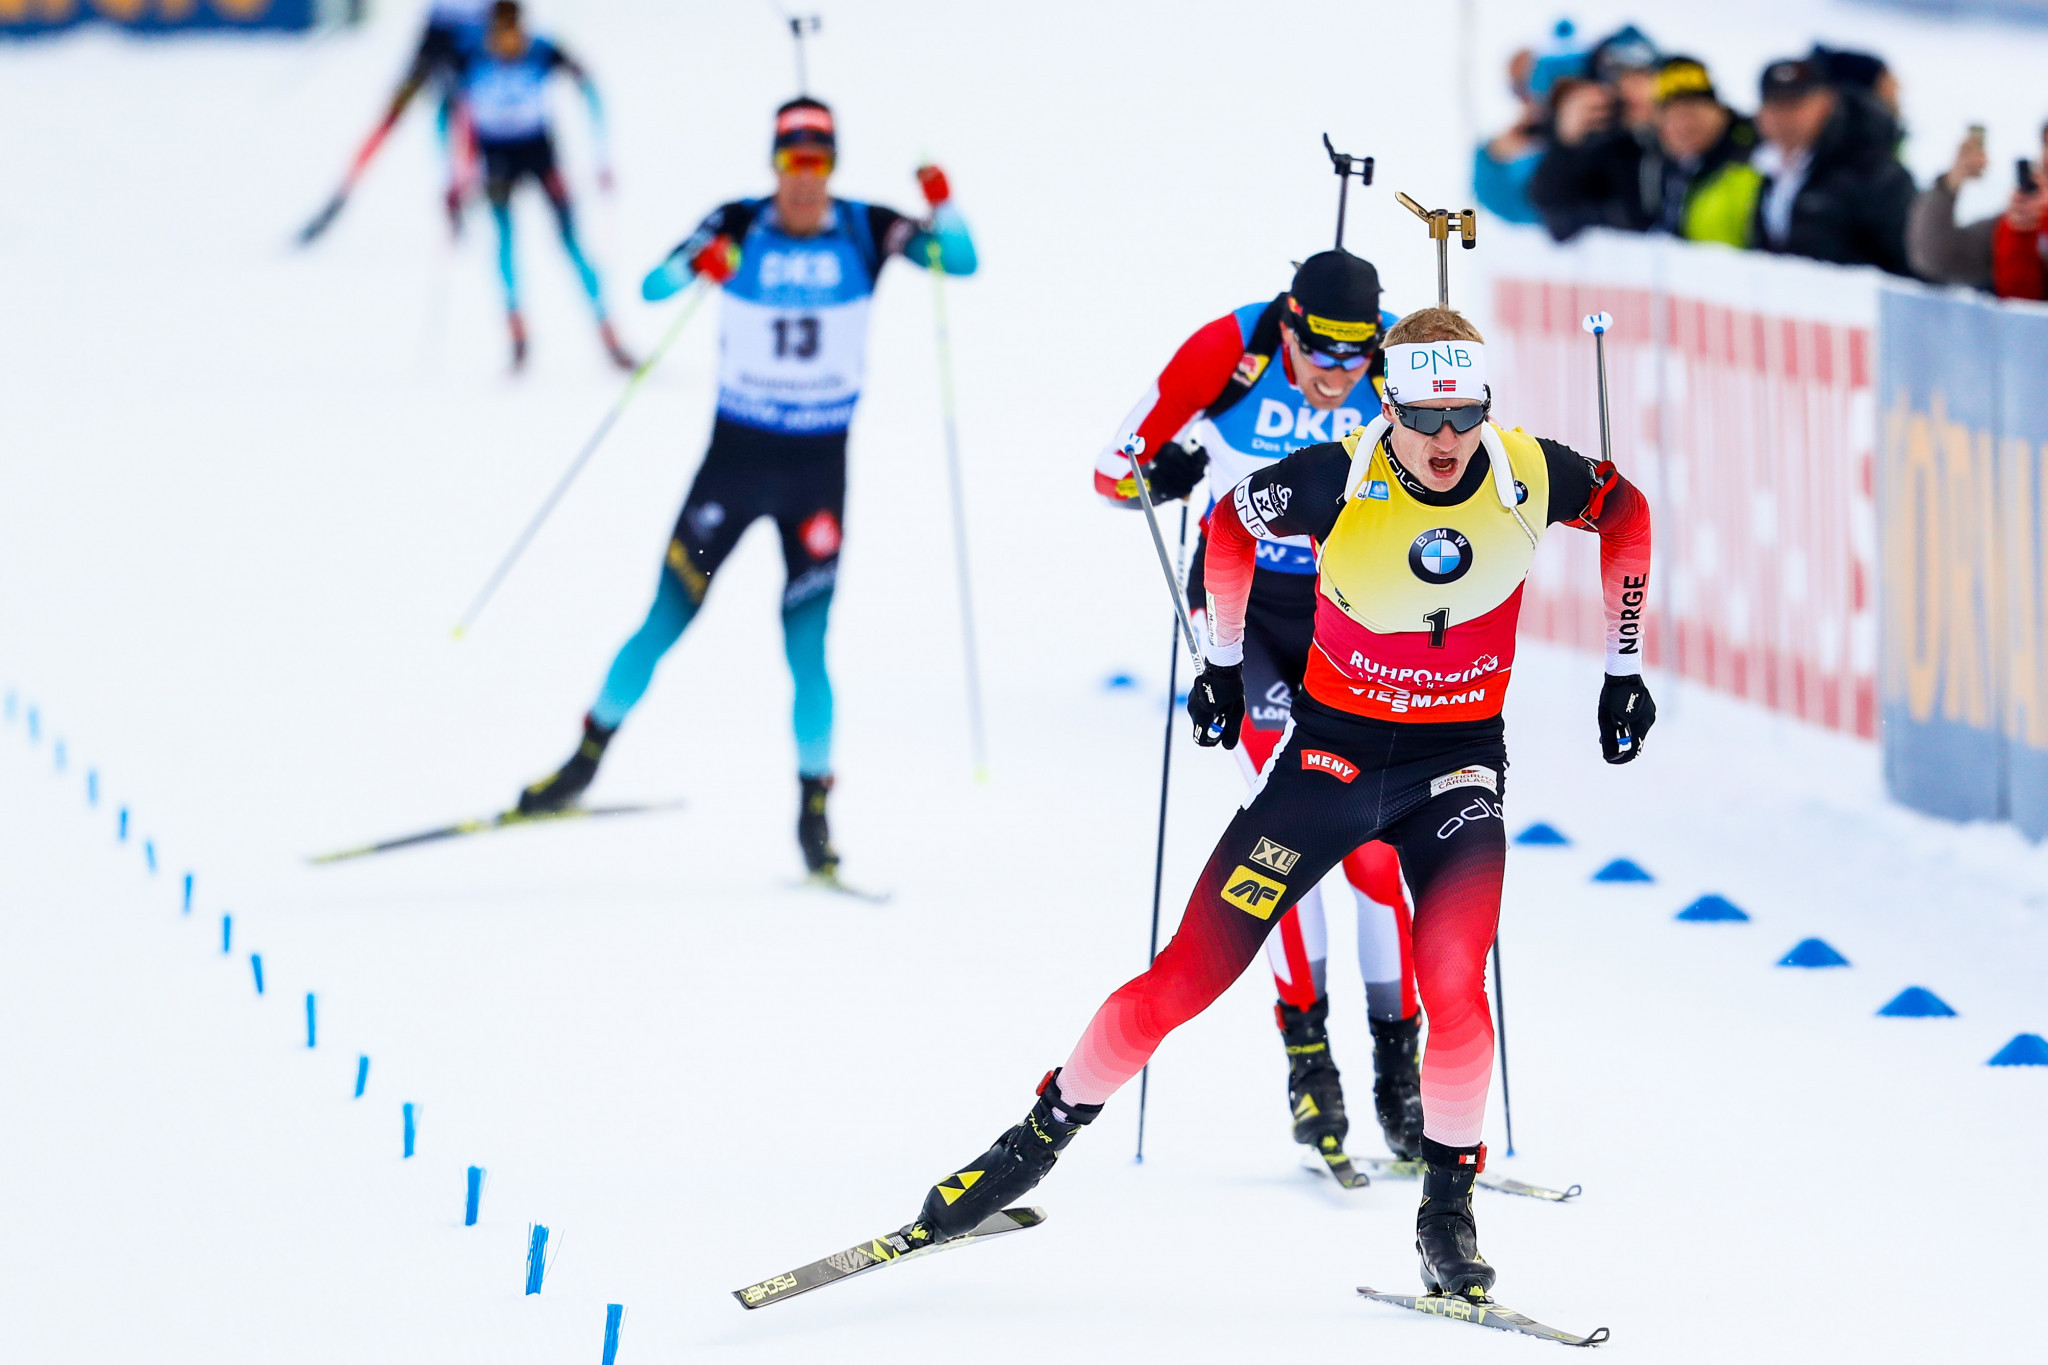 Bø completes hat-trick of victories at IBU World Cup in Ruhpolding